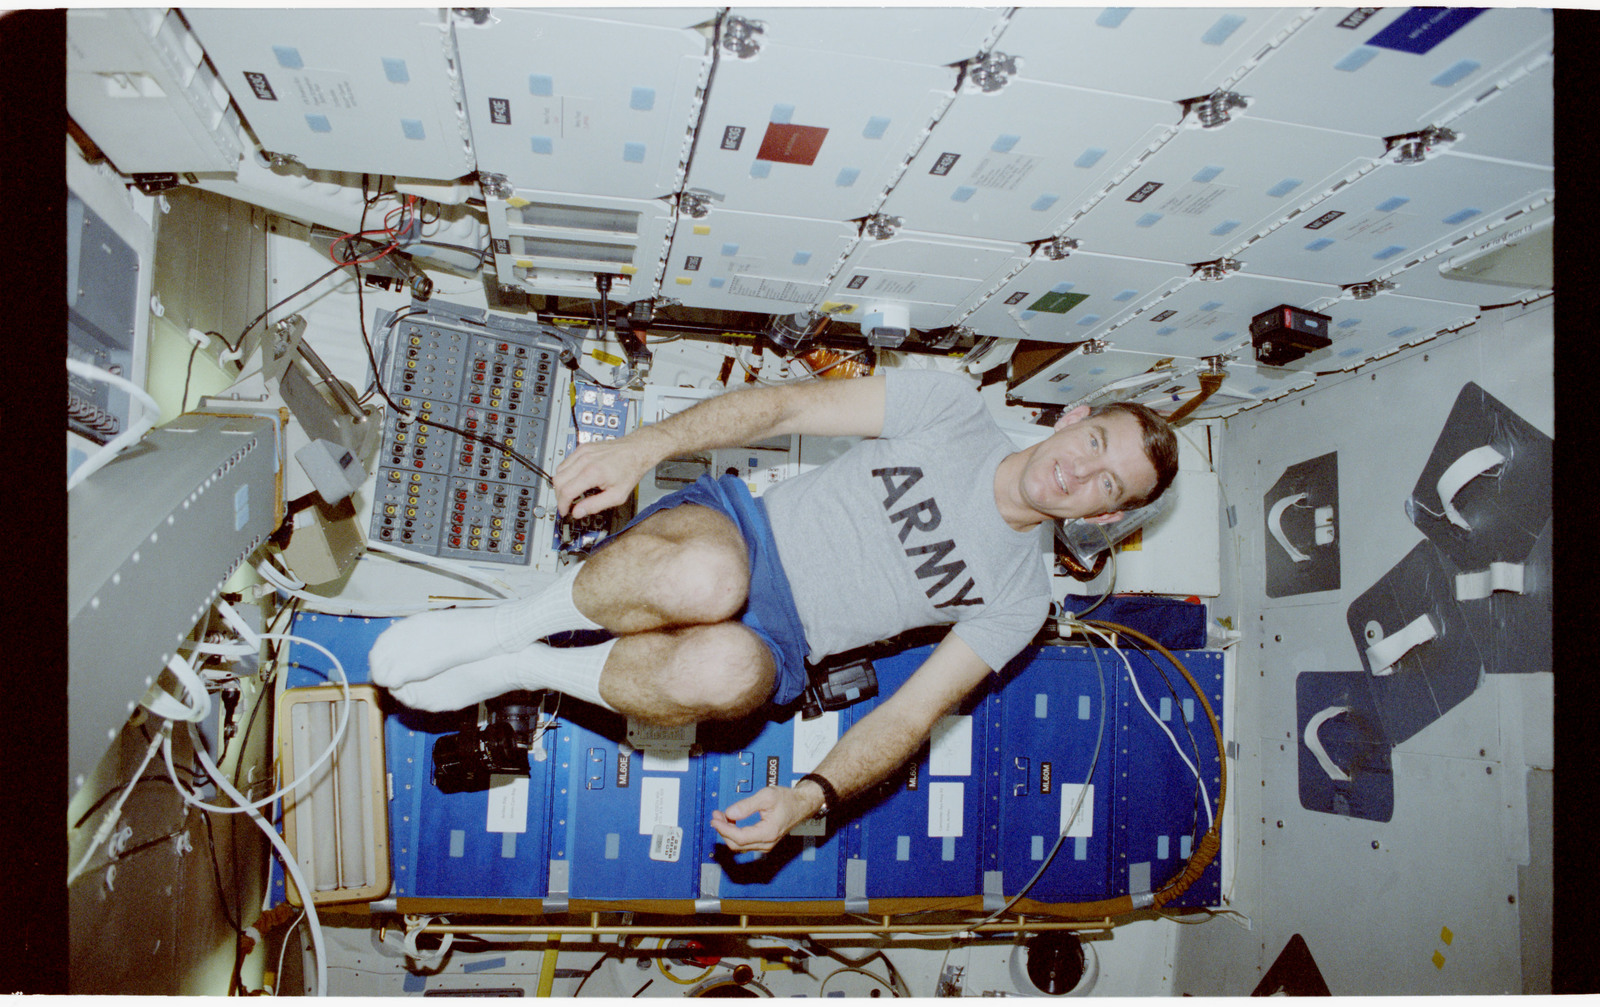 STS053-248-007 - STS-053 - Crewmember floats in the FWD MDDK